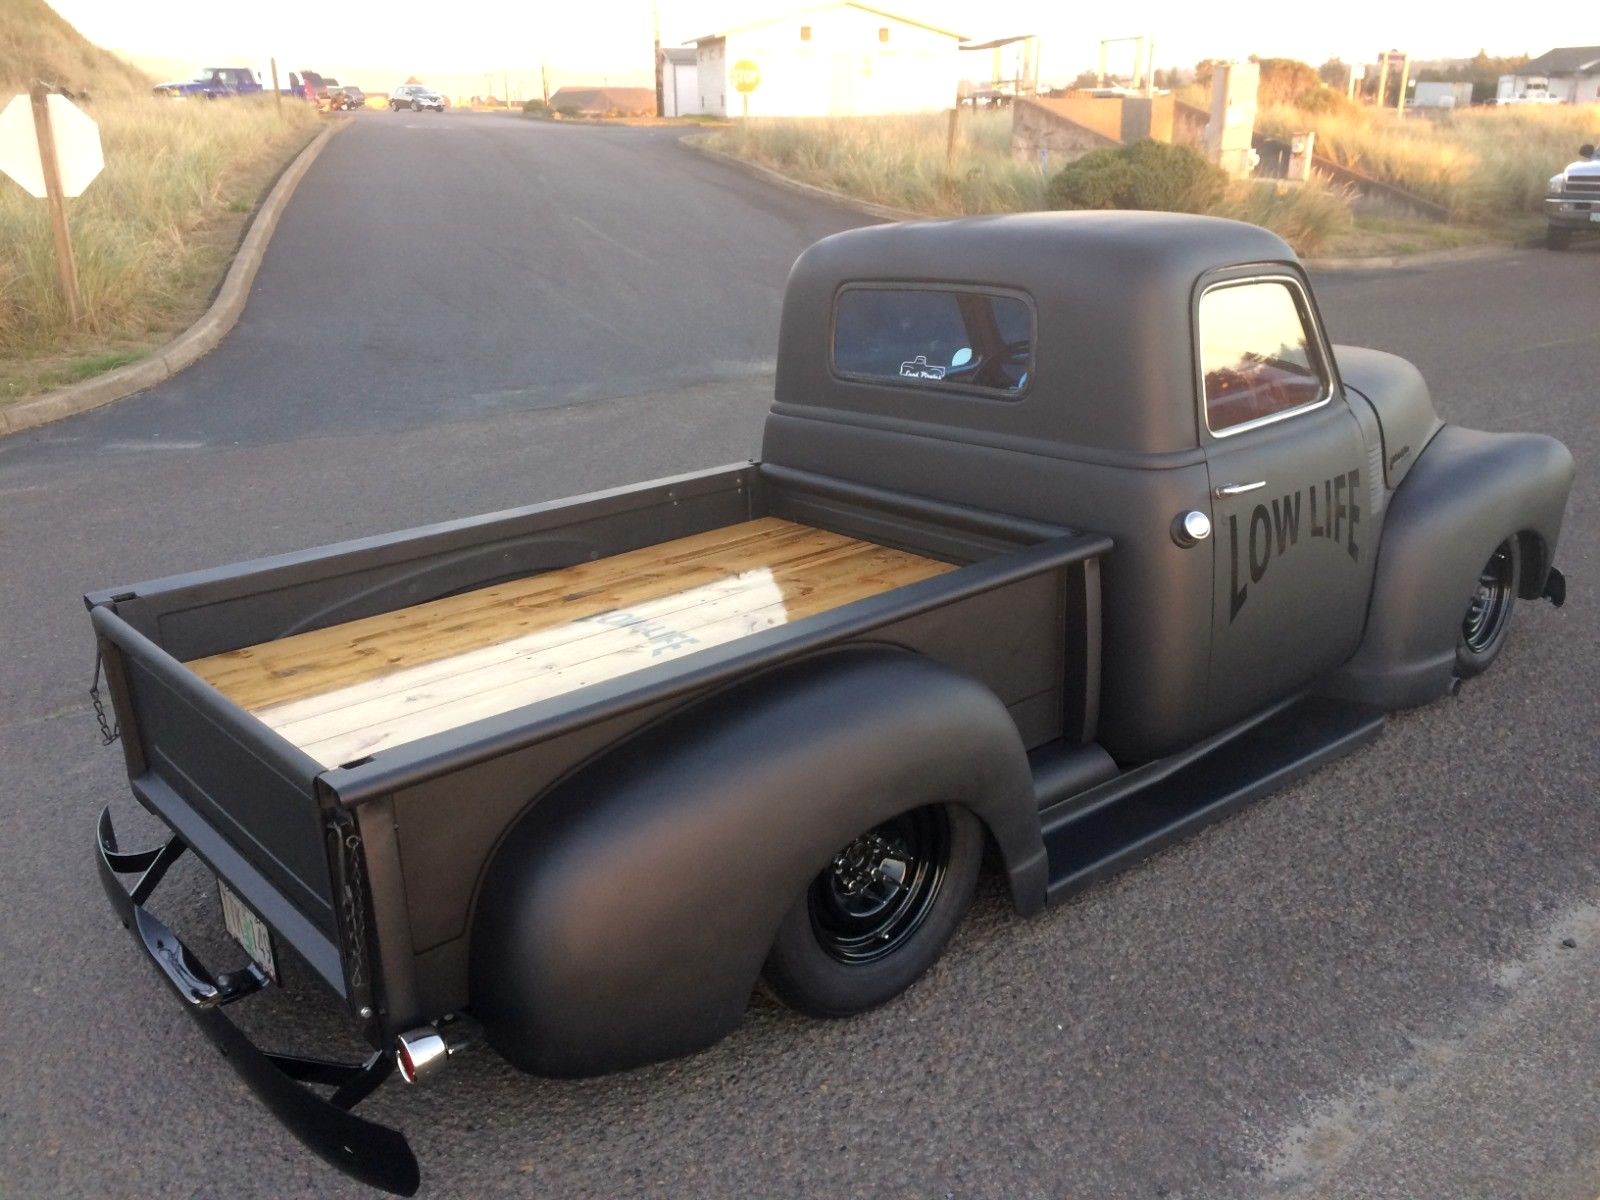 Amazing 1954 Chevrolet Other Pickups Chevy Truck 3100 Short Bed C10 Pick Up Air Ride Bagged Rat Rod Low Rider Hot C 10 2018 2019